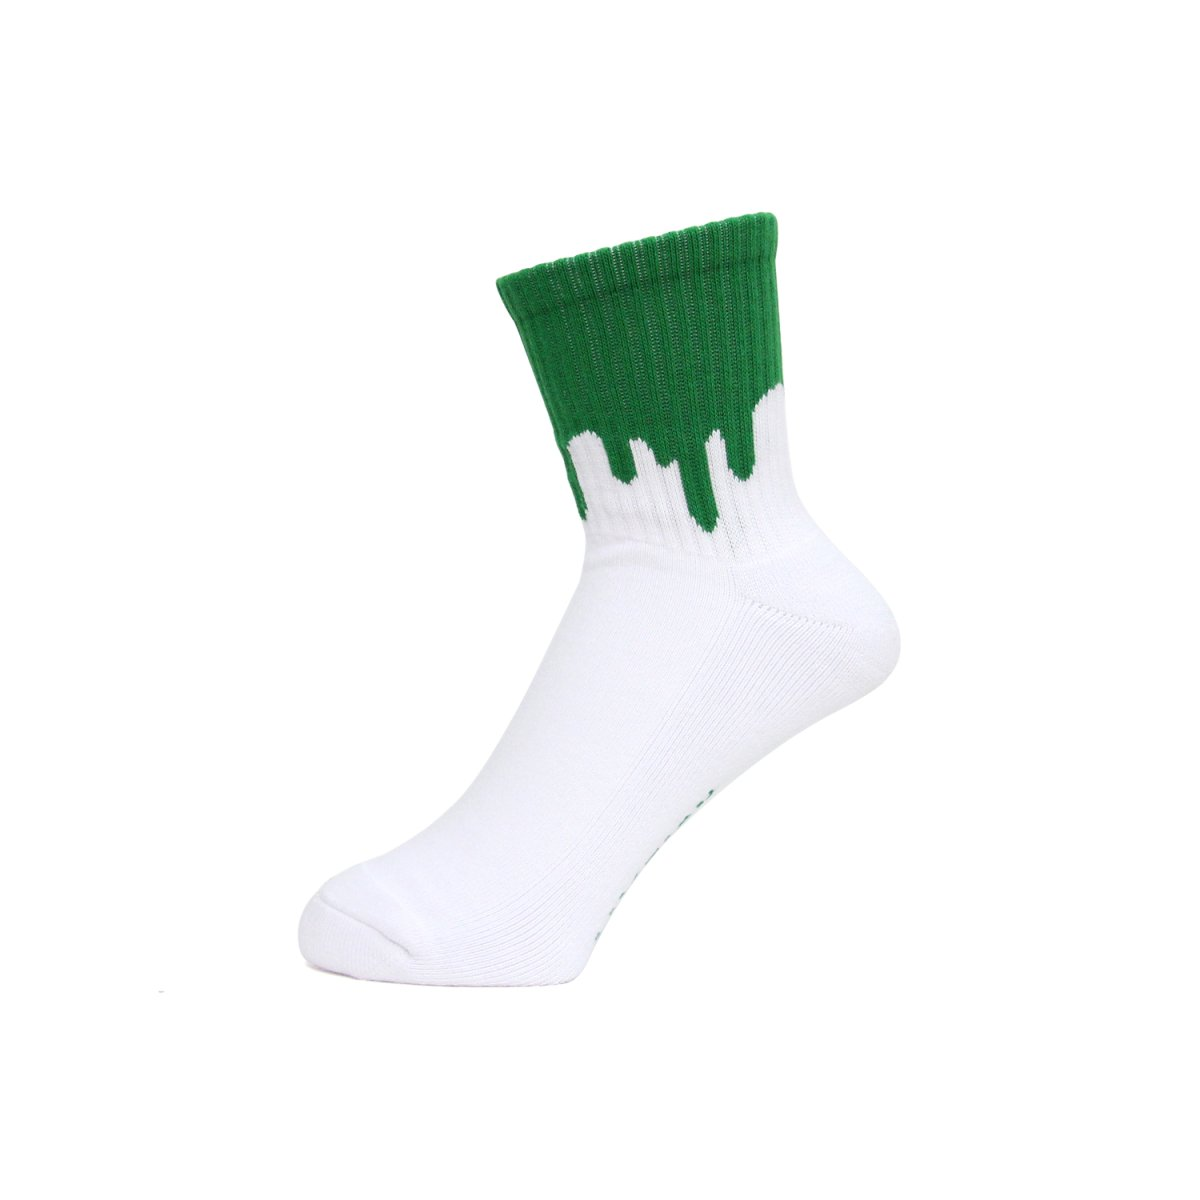 <img class='new_mark_img1' src='https://img.shop-pro.jp/img/new/icons14.gif' style='border:none;display:inline;margin:0px;padding:0px;width:auto;' />LIXTICK DRIP SOCKS 3PACK (K.O.D.P ver.)